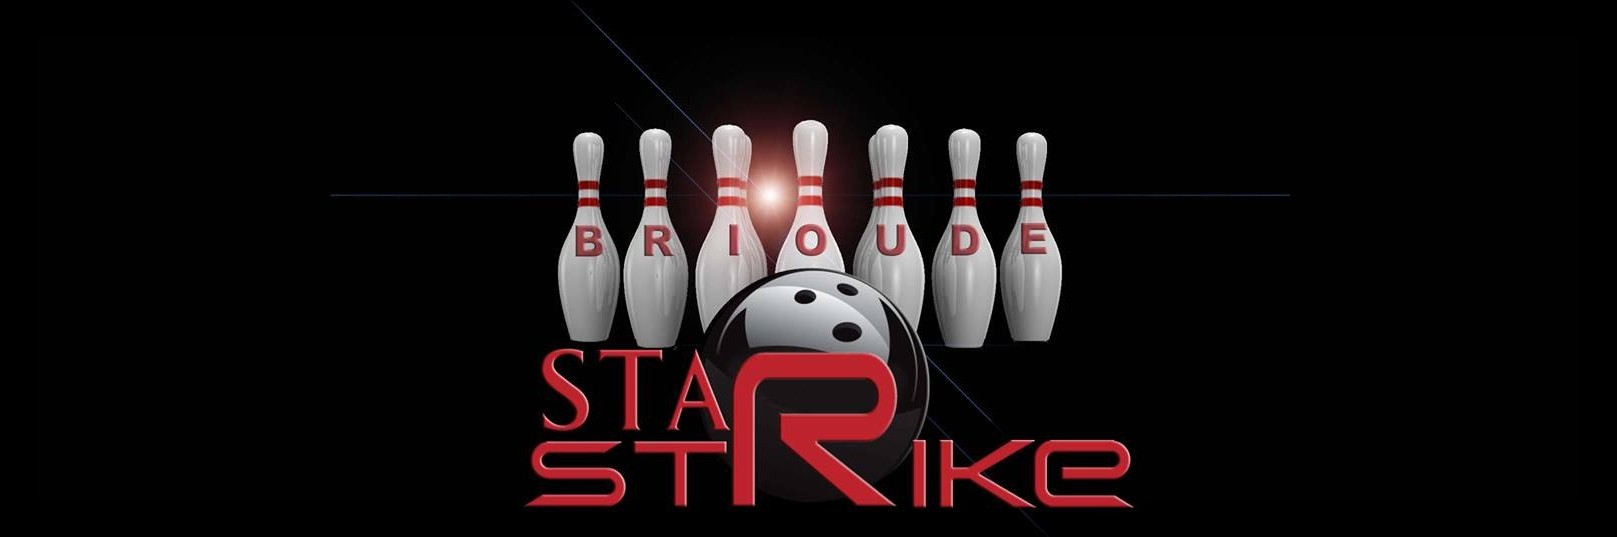 Bowling Le Star Strike